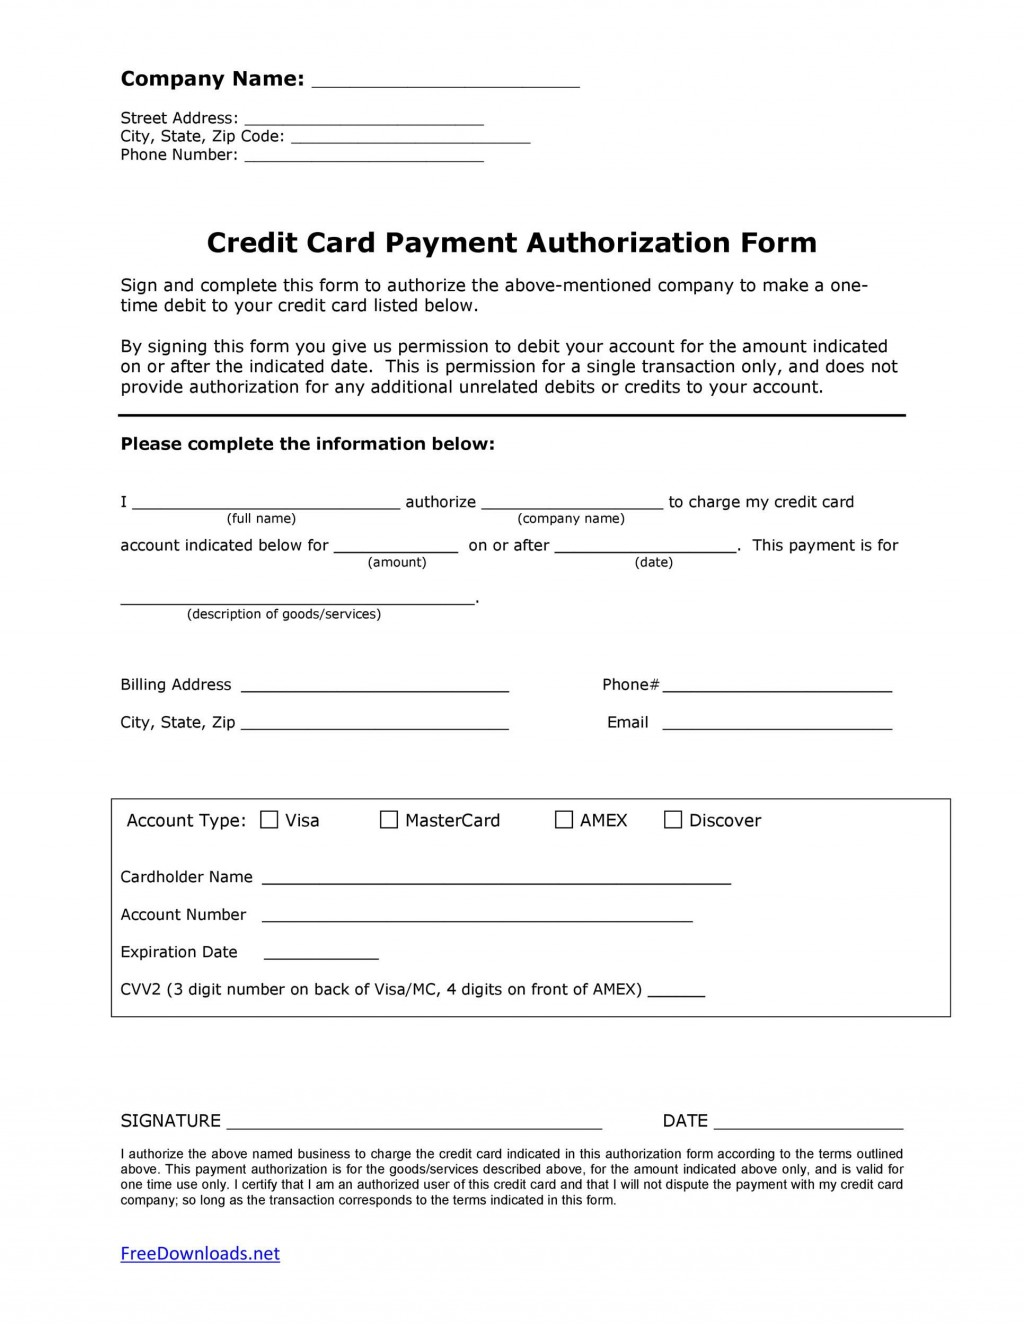 007 Astounding One Time Credit Card Payment Authorization Form Template Example Large